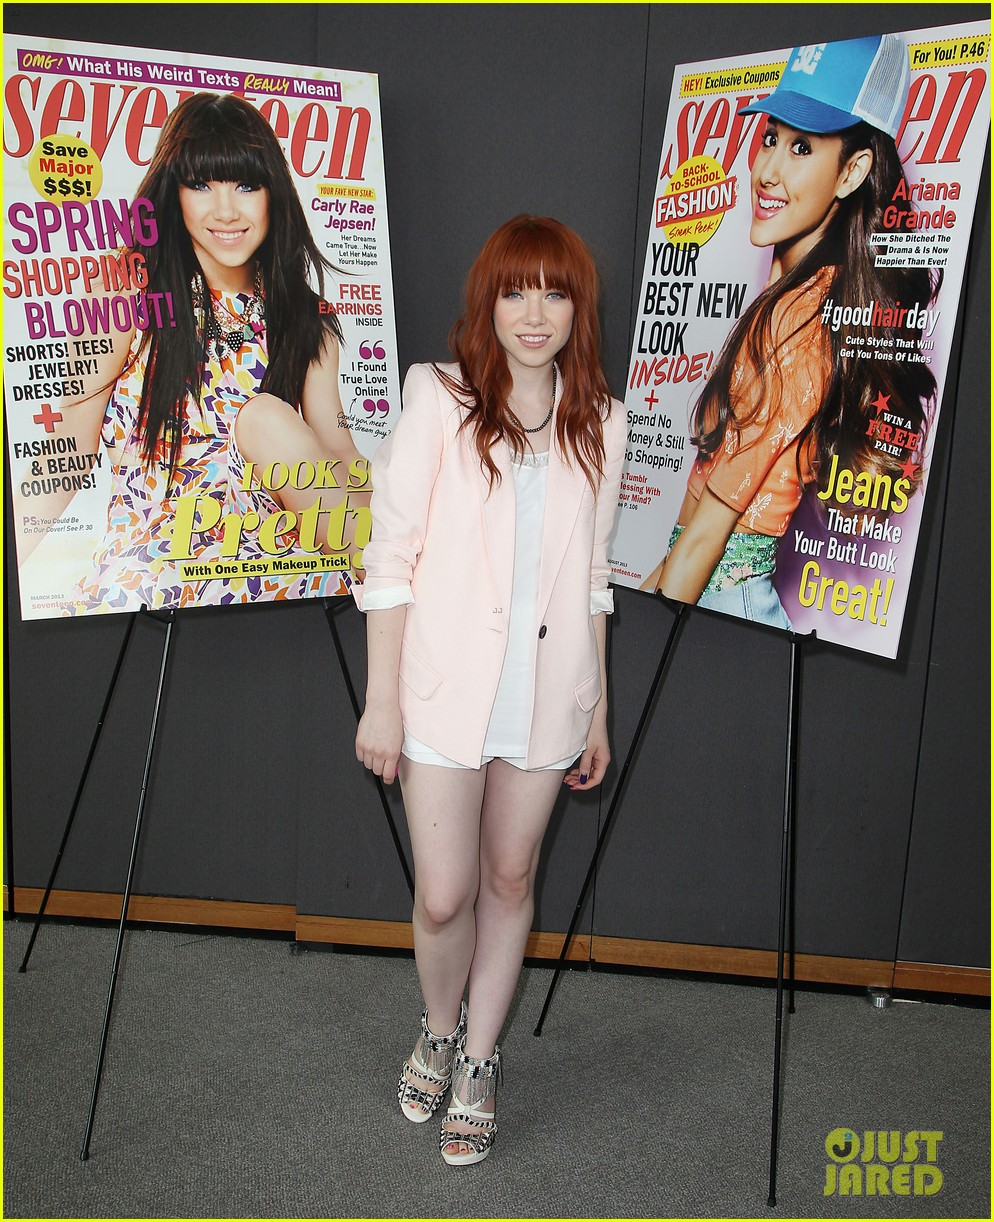 Think, that Carly rae jepsen fakes quite